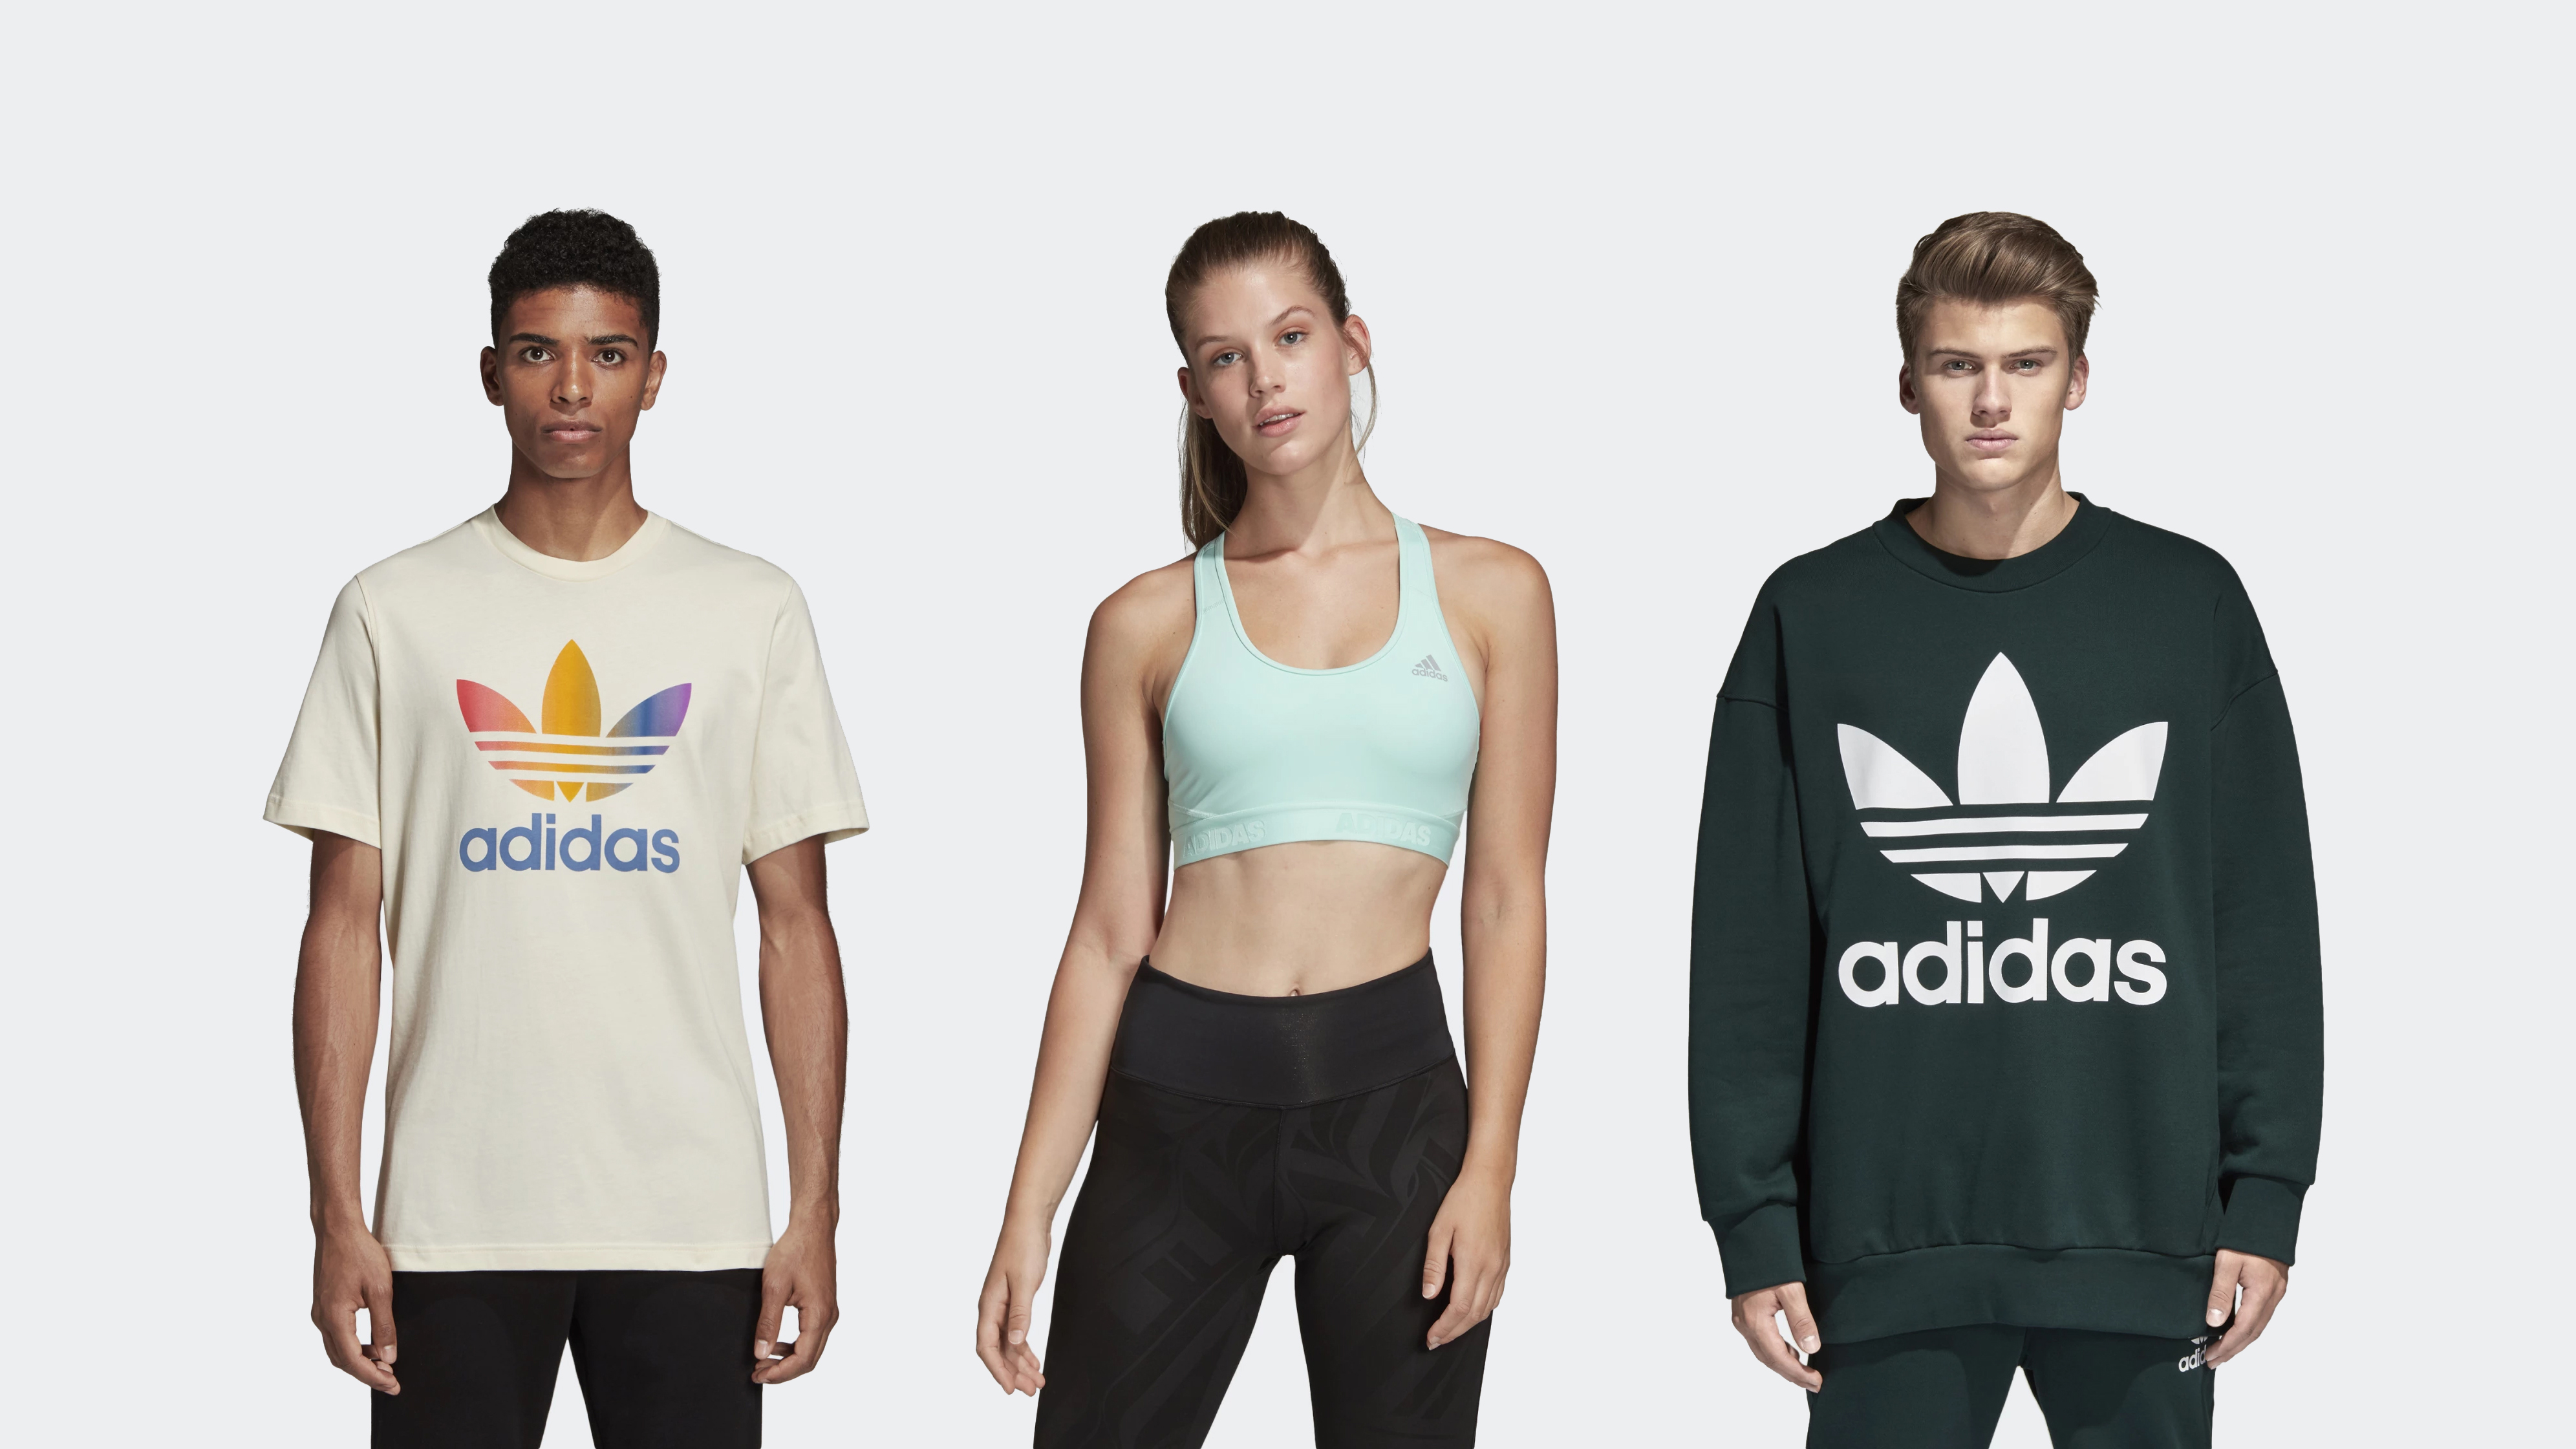 1755a6cb9dac1 Best Adidas deals  get affordable Adidas gear for May 2019